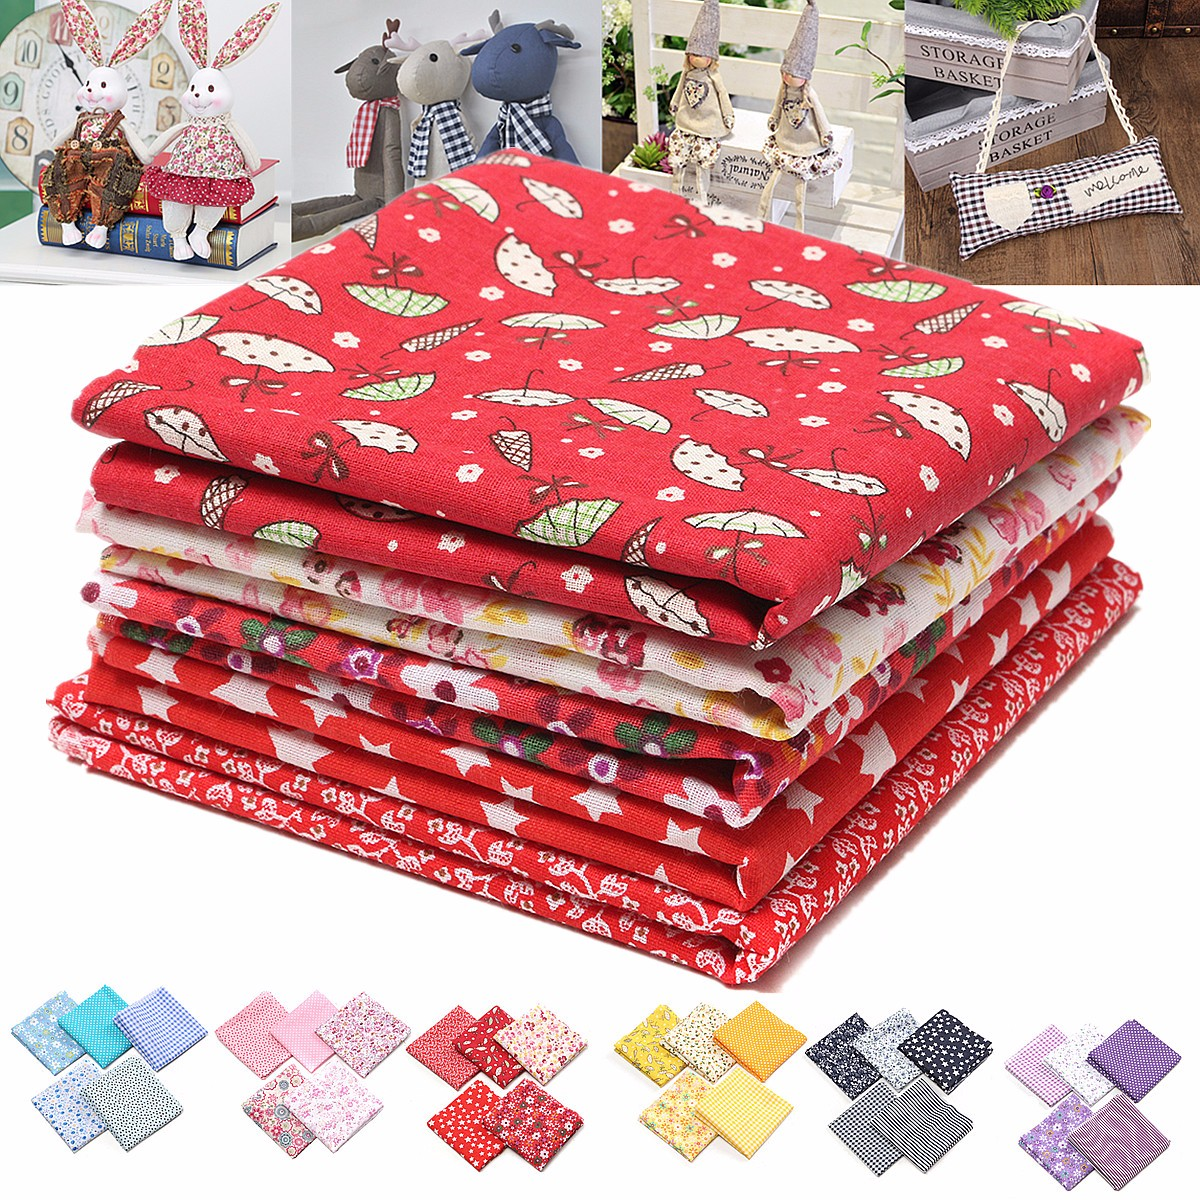 5Pcs 19.69x19.69'' SEWING & KNITTING SUPPLIES Squares DIY Multicolor Assorted Mixed Pattern Cotton Fabric Sewing Quilting Hand Stitching Patchwork DIY Craft Can Make Christmas Decor